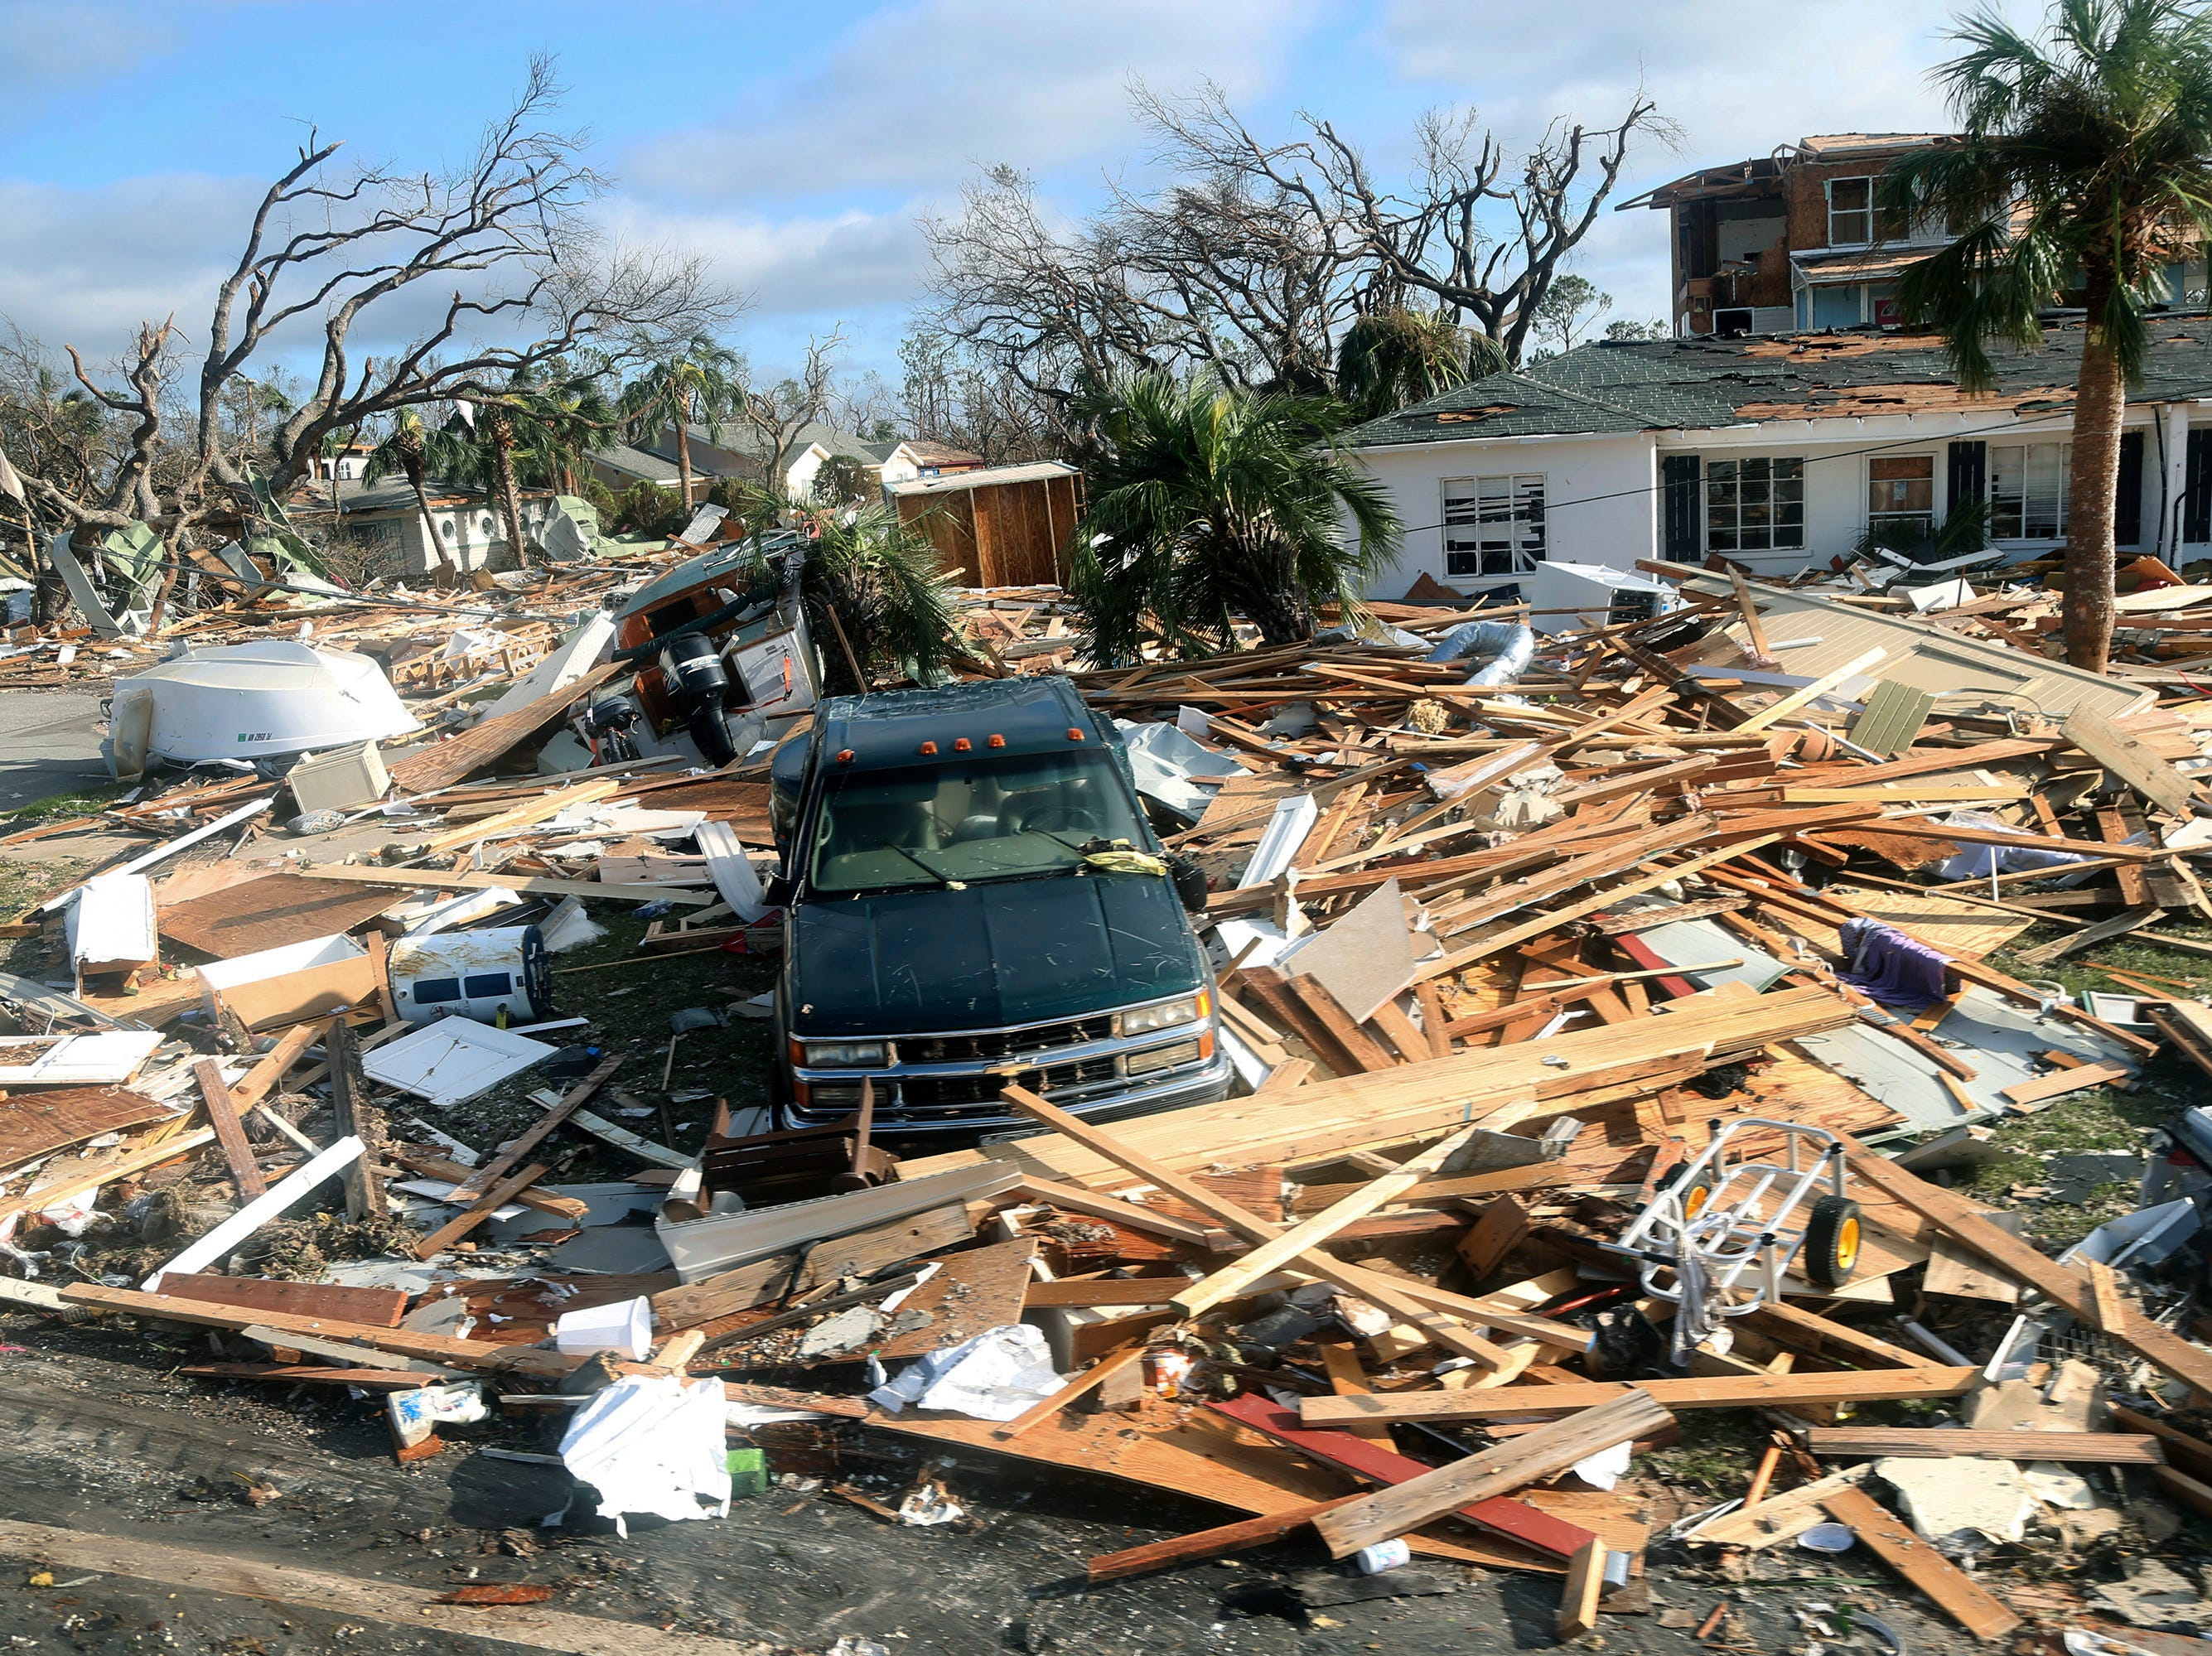 The coastal township of Mexico Beach, Fla., lays devastated on Thursday, Oct. 11, 2018, after Hurricane Michael made landfall on Wednesday in the Florida Panhandle.